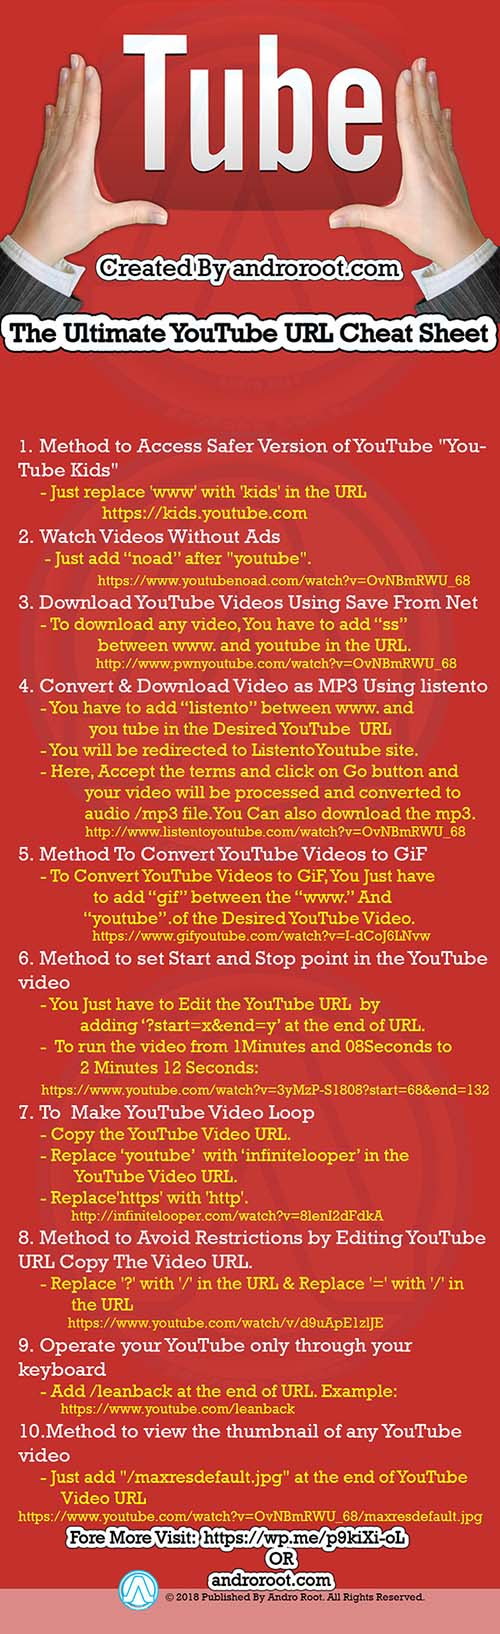 AllThe Ultimate YouTube URL Cheat Sheet orYouTube Tricks in a Single Image